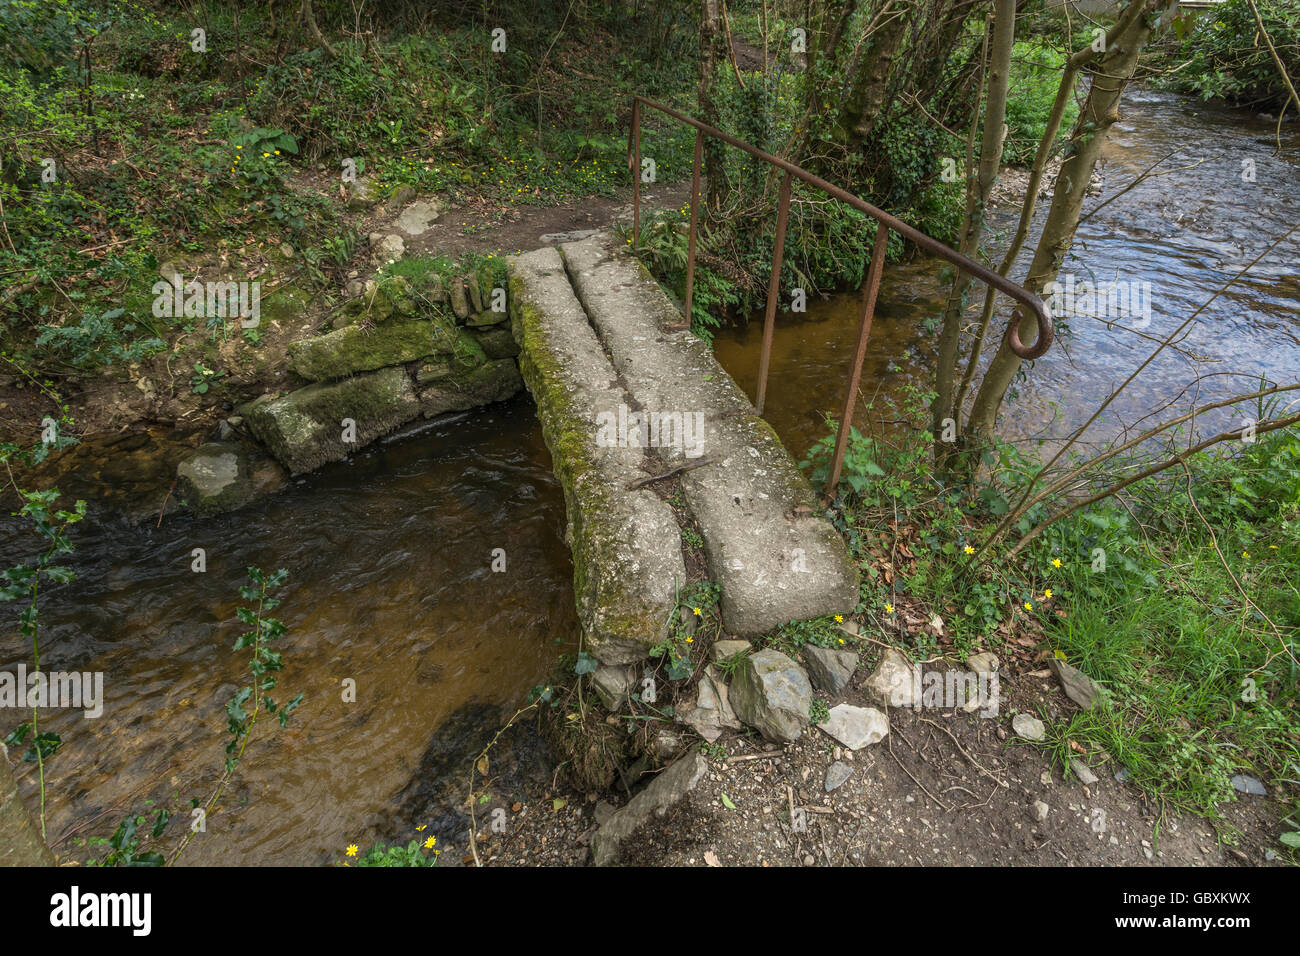 Granite stone bridge straddling a stream in mid-Cornwall. Visual metaphor for concept of uniting divided sides or - Stock Image